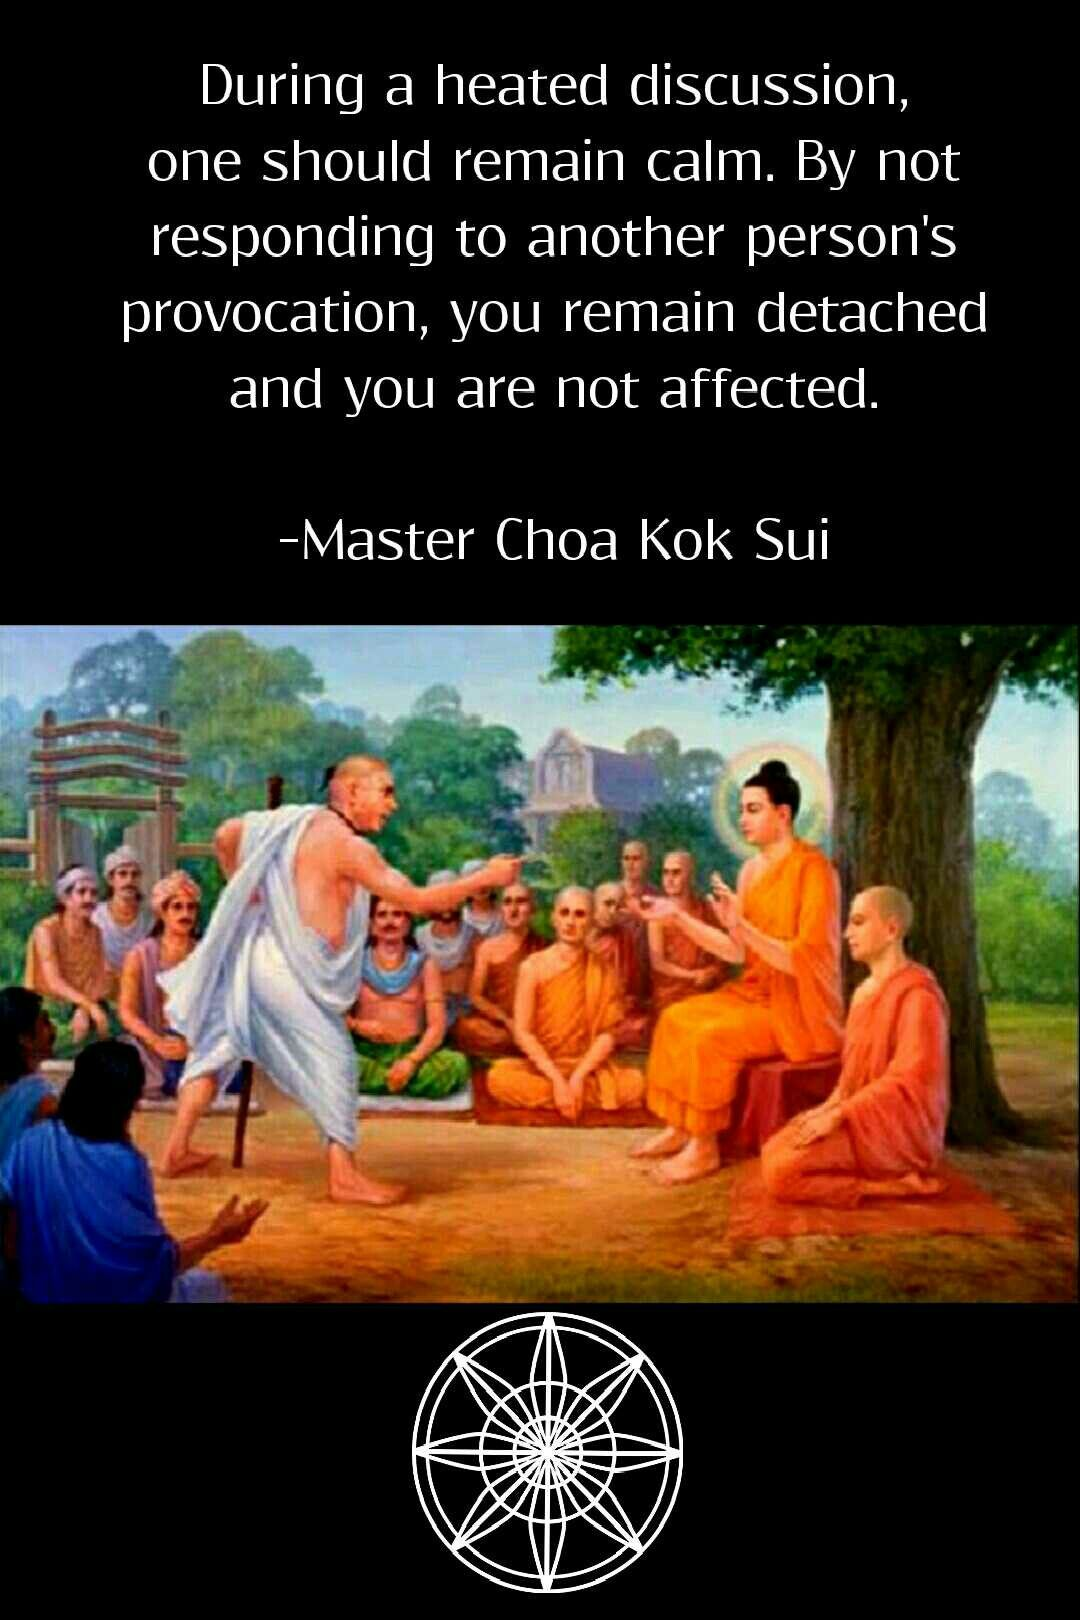 Another Quotation By Choa Kok Sui This Quotation Reflects The Buddhist  Teaching To Detach From